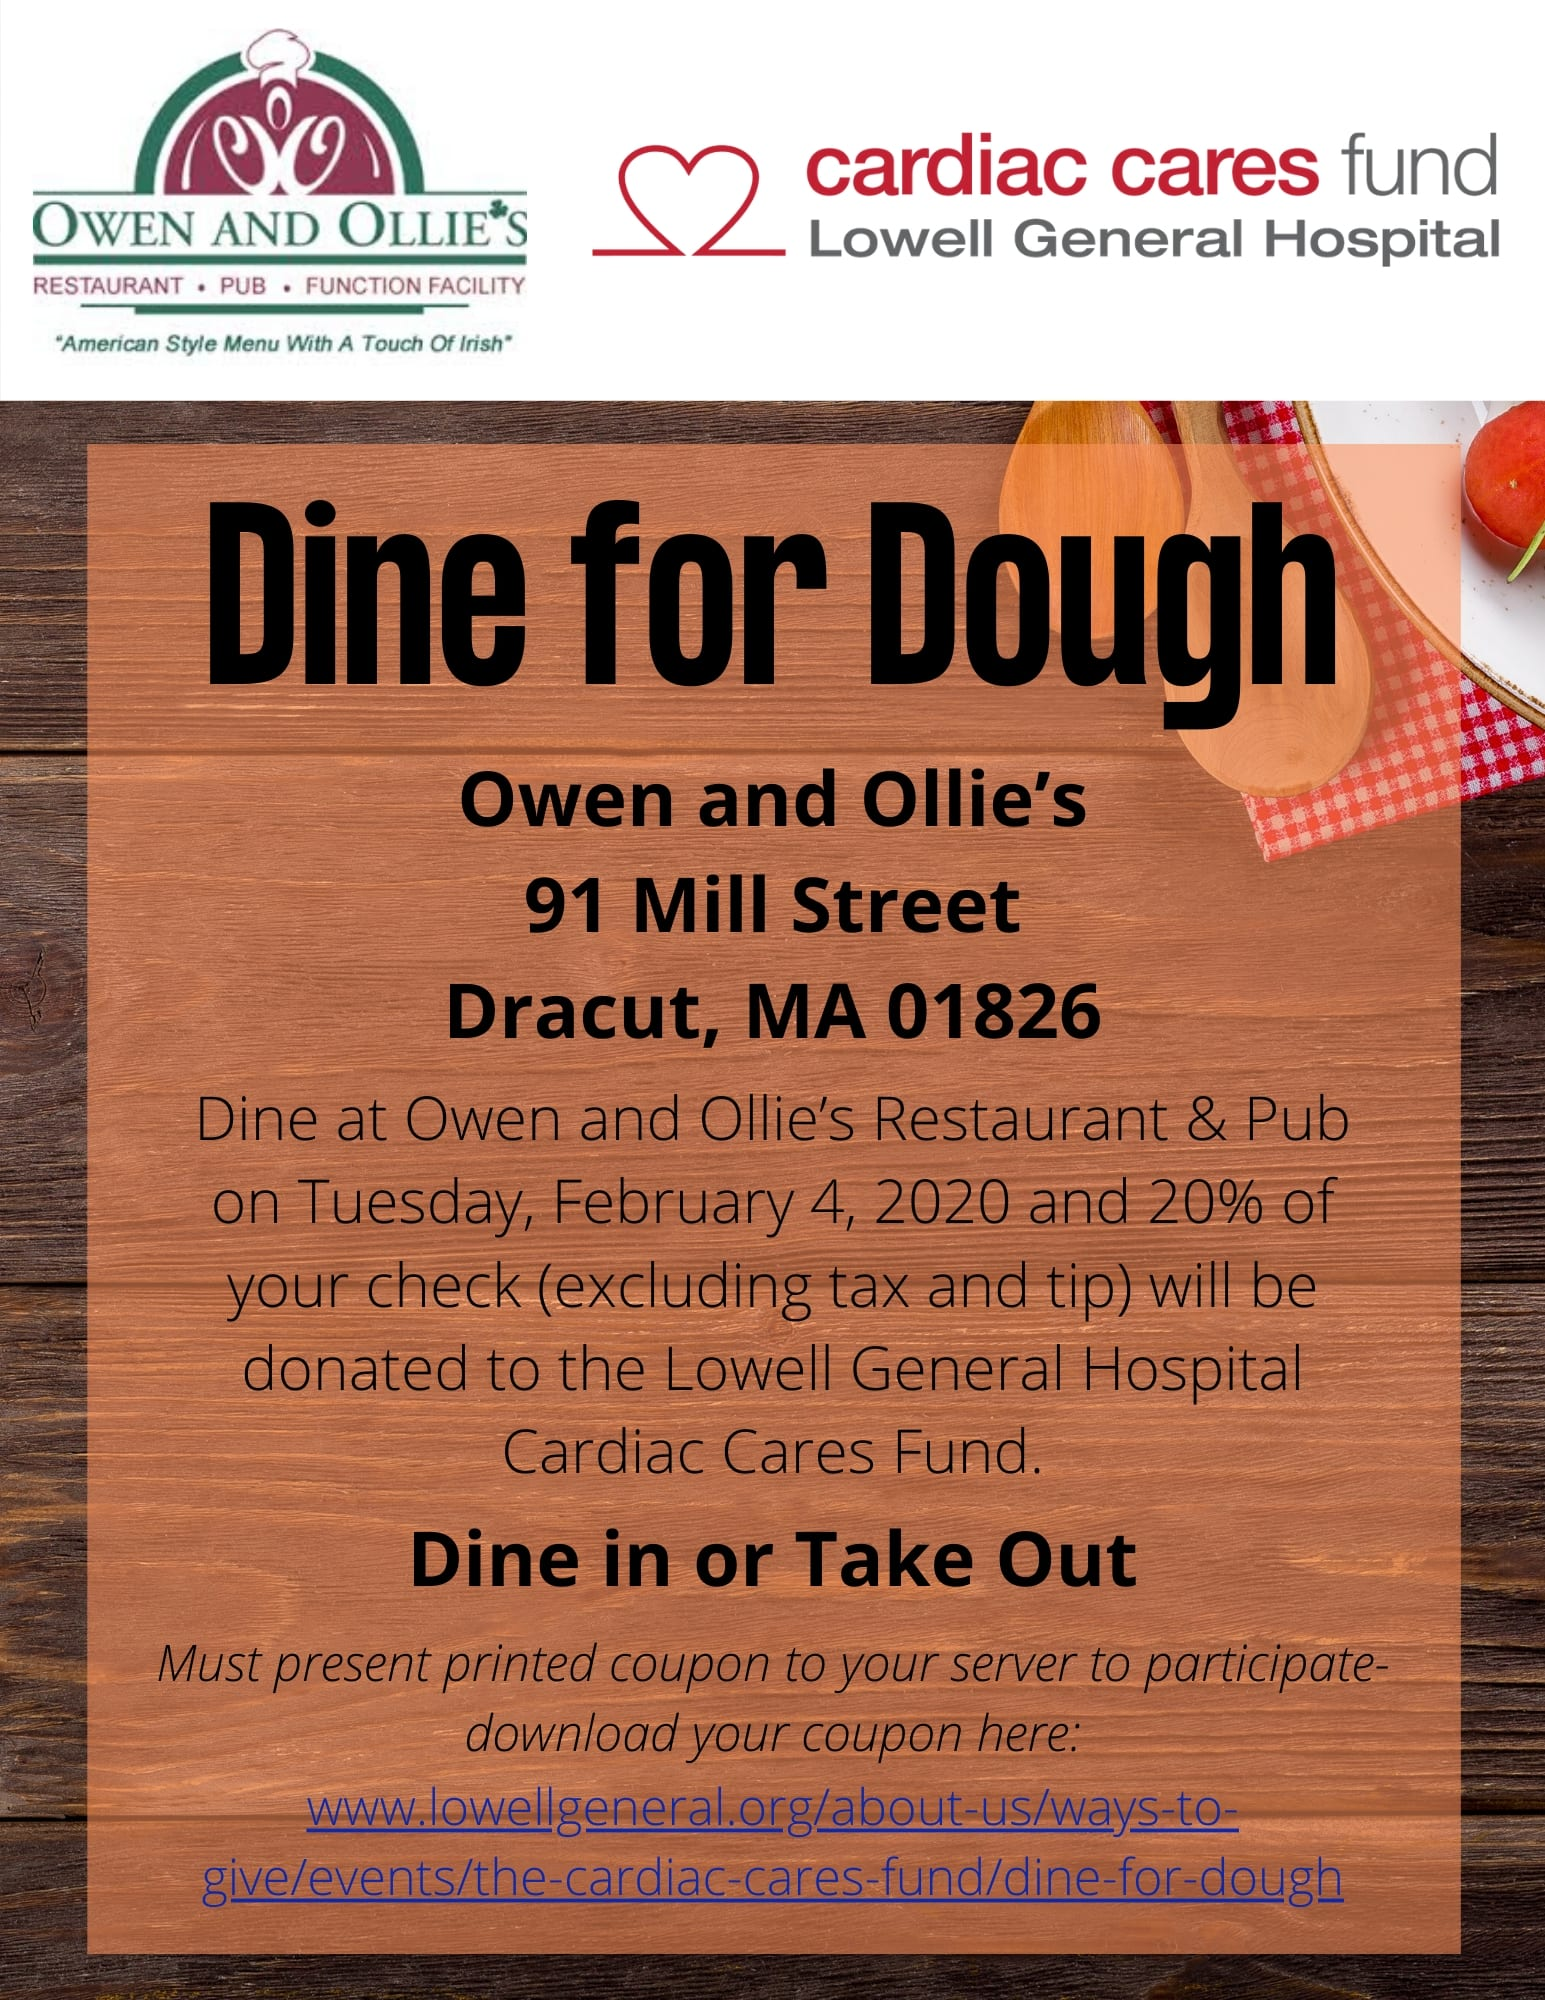 Cardiac Cares - Dine for Dough 2020 Flyer